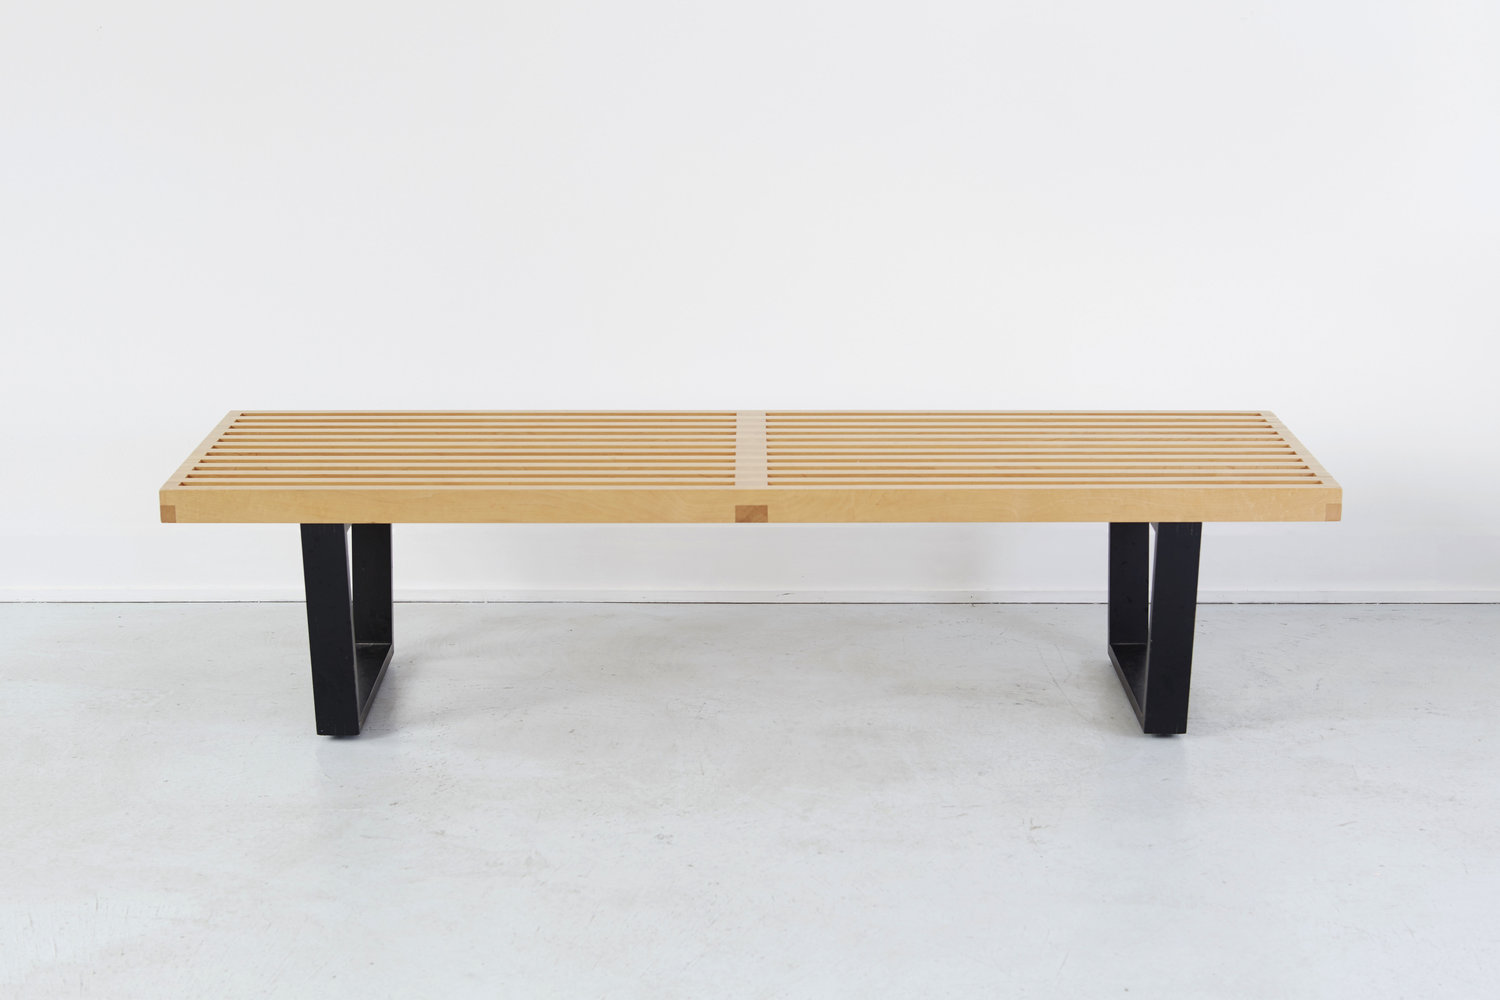 George Nelson's Platform Bench for Herman Miller. Photograph courtesy of the gallery.